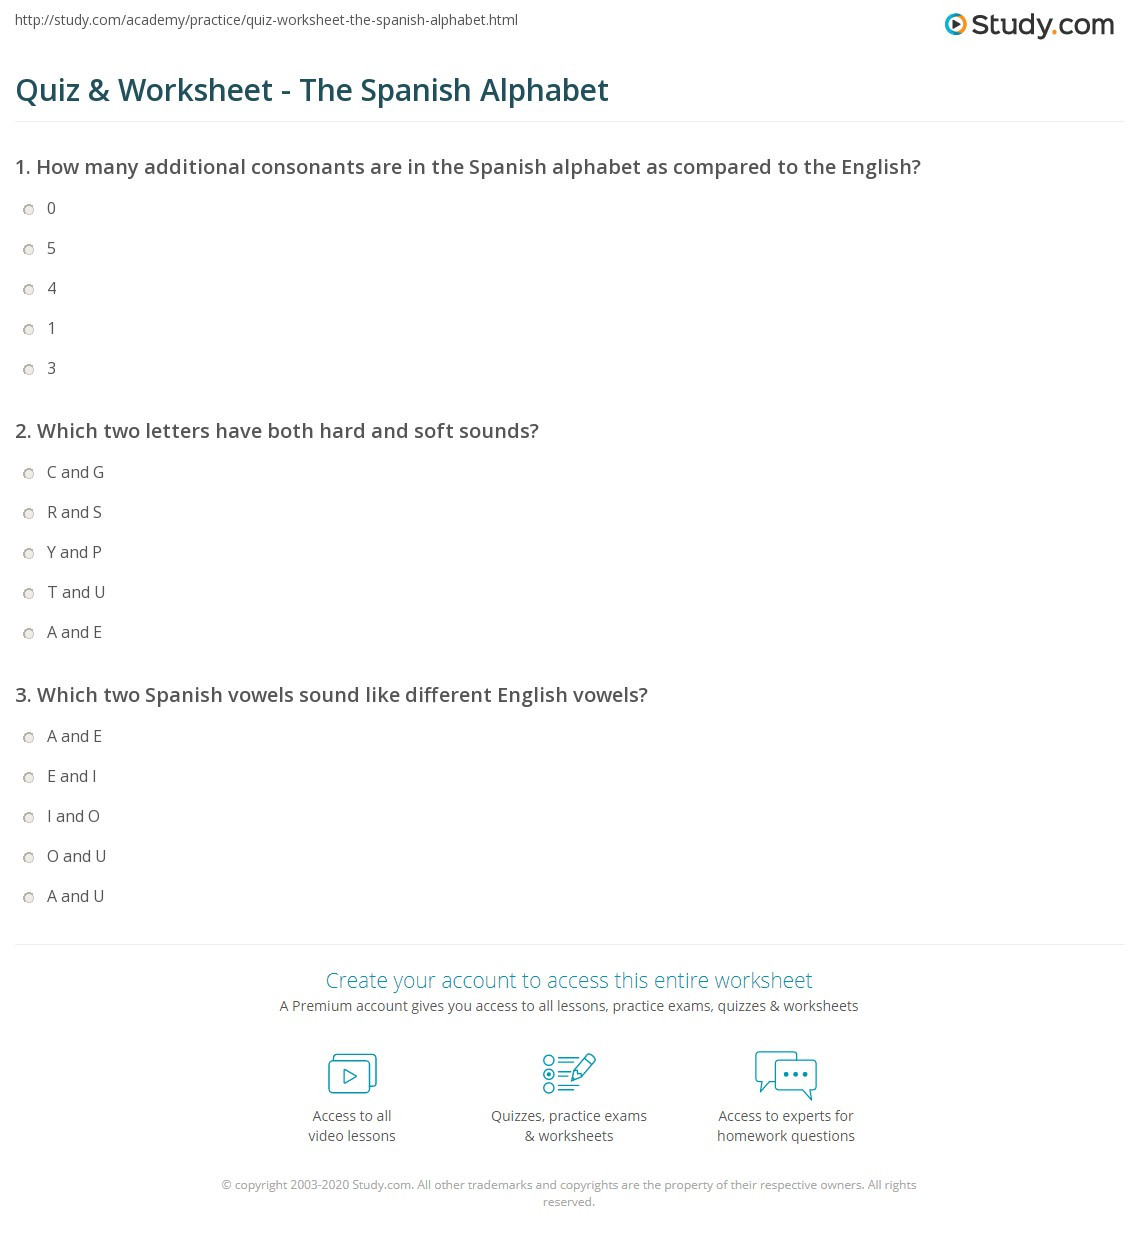 Spanish Alphabet Practice Worksheet Quiz & Worksheet the Spanish Alphabet